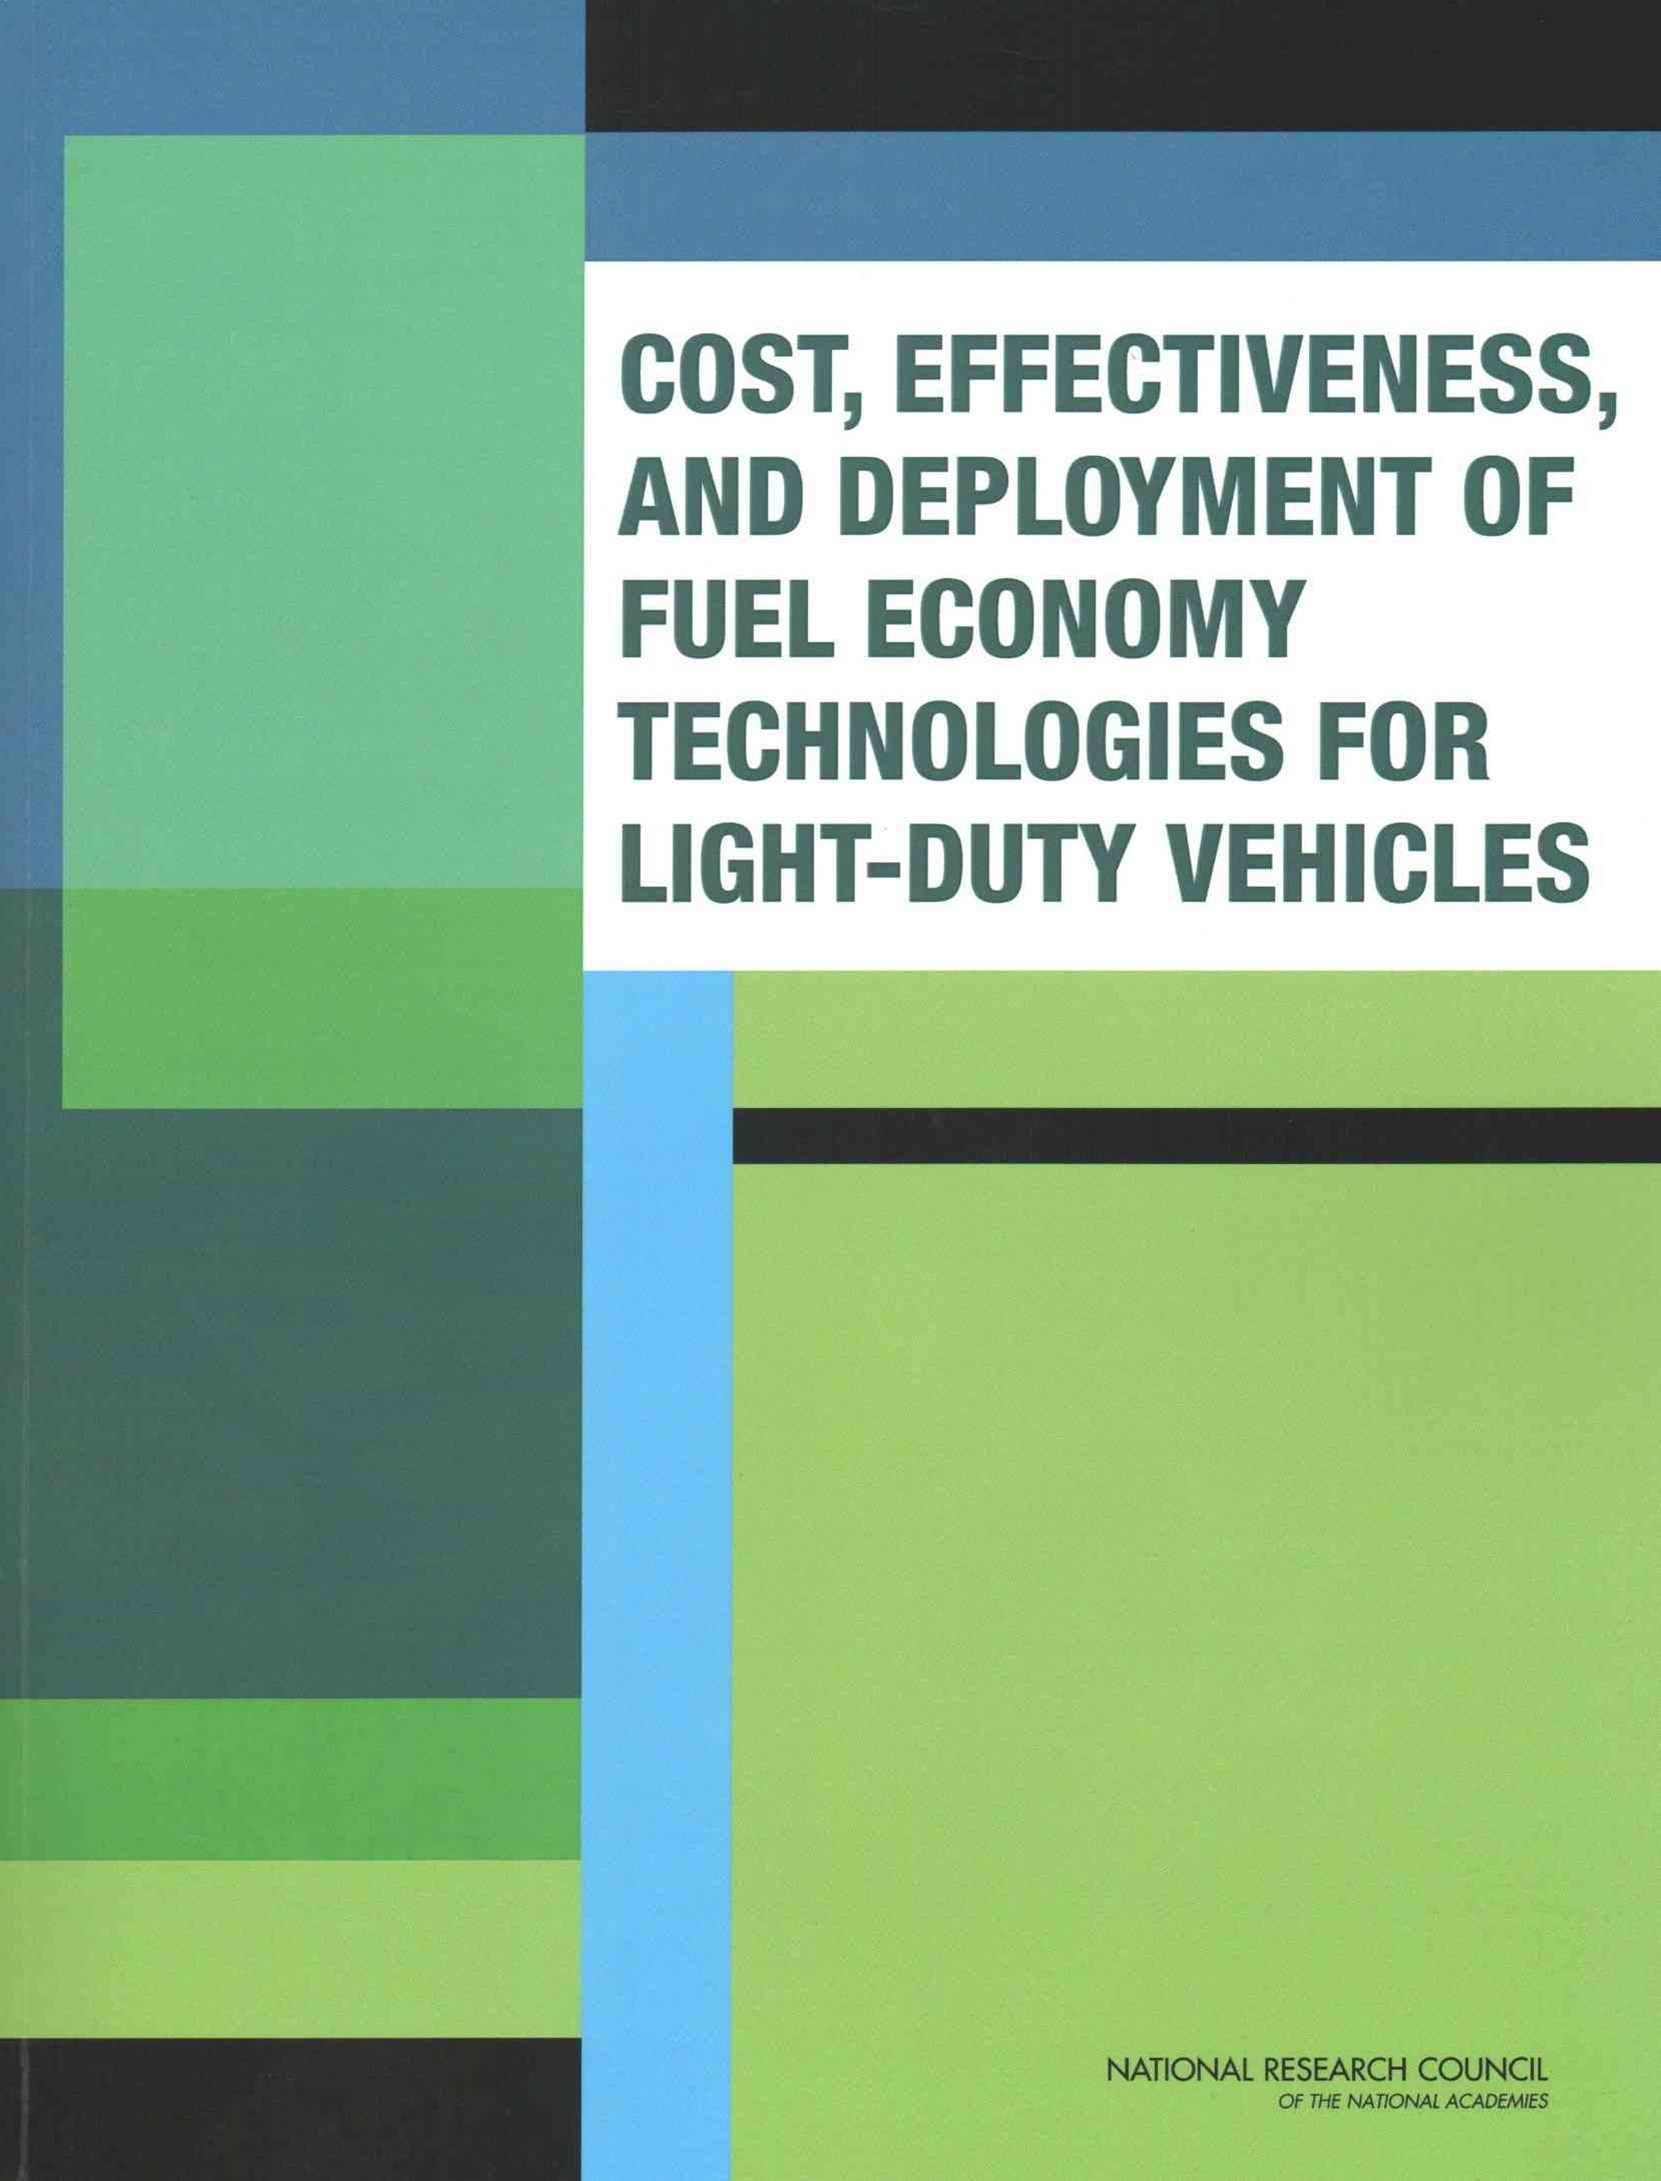 Cost, Effectiveness and Deployment of Fuel Economy Technologies for Light-Duty Vehicles